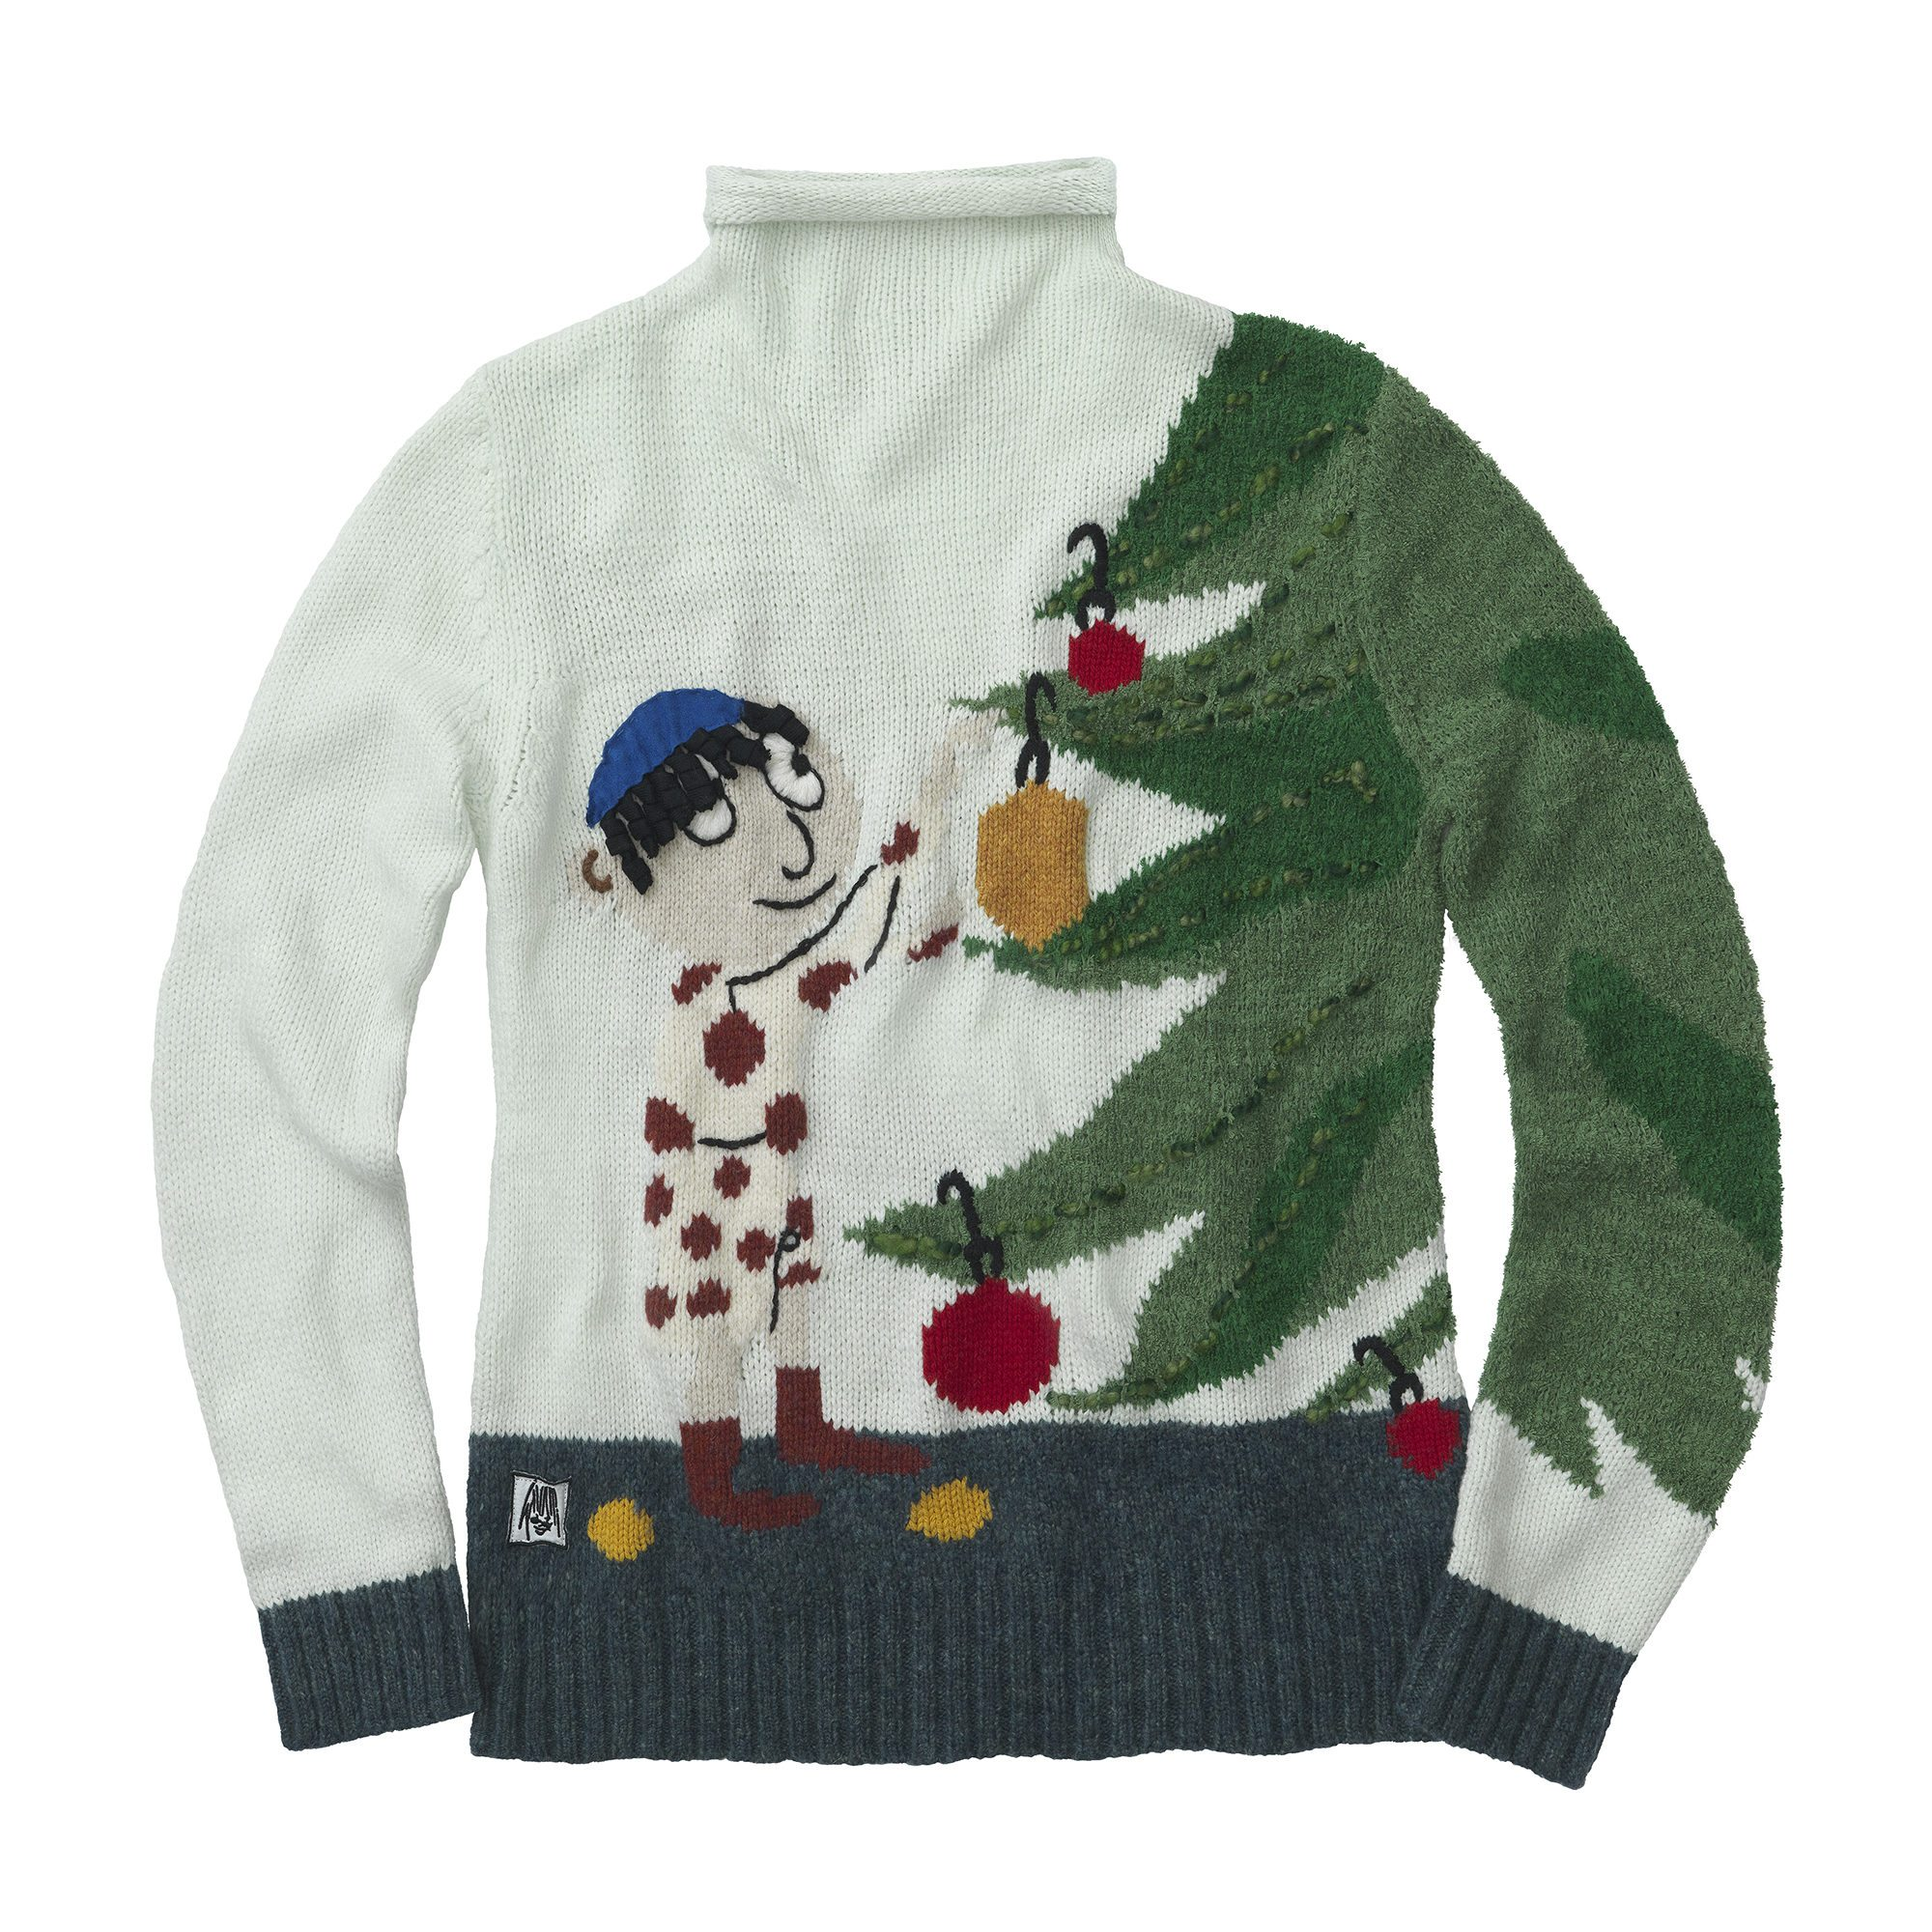 WHOOPI GOLDBERG Boy with Tree Ornaments Sweater, $179